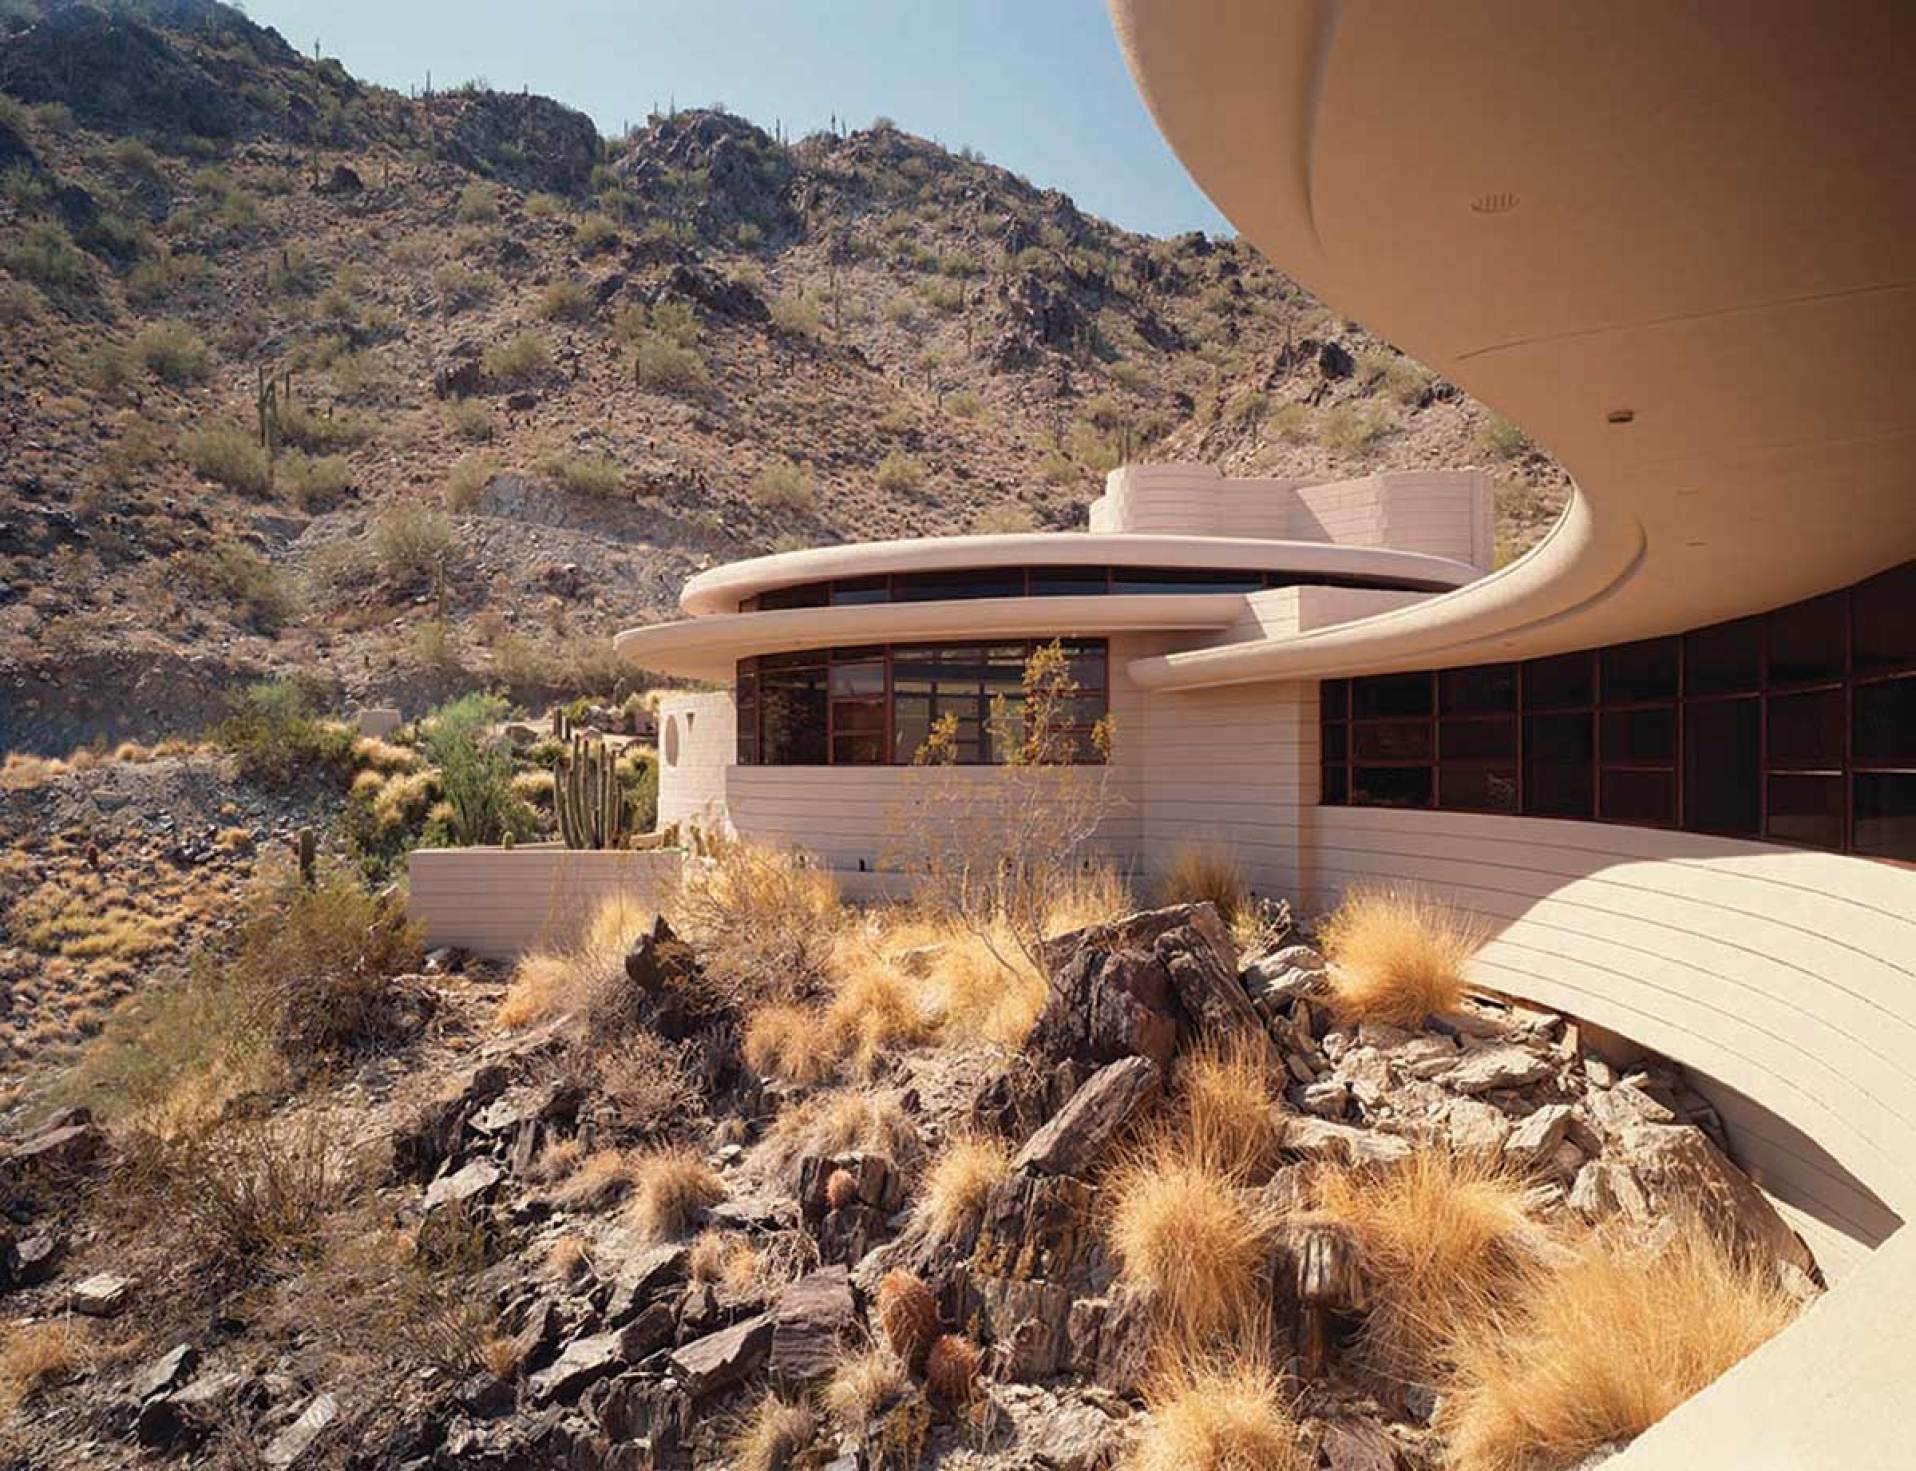 Delectant frank lloyd wright organic architecture - Frank lloyd wright architecture ...